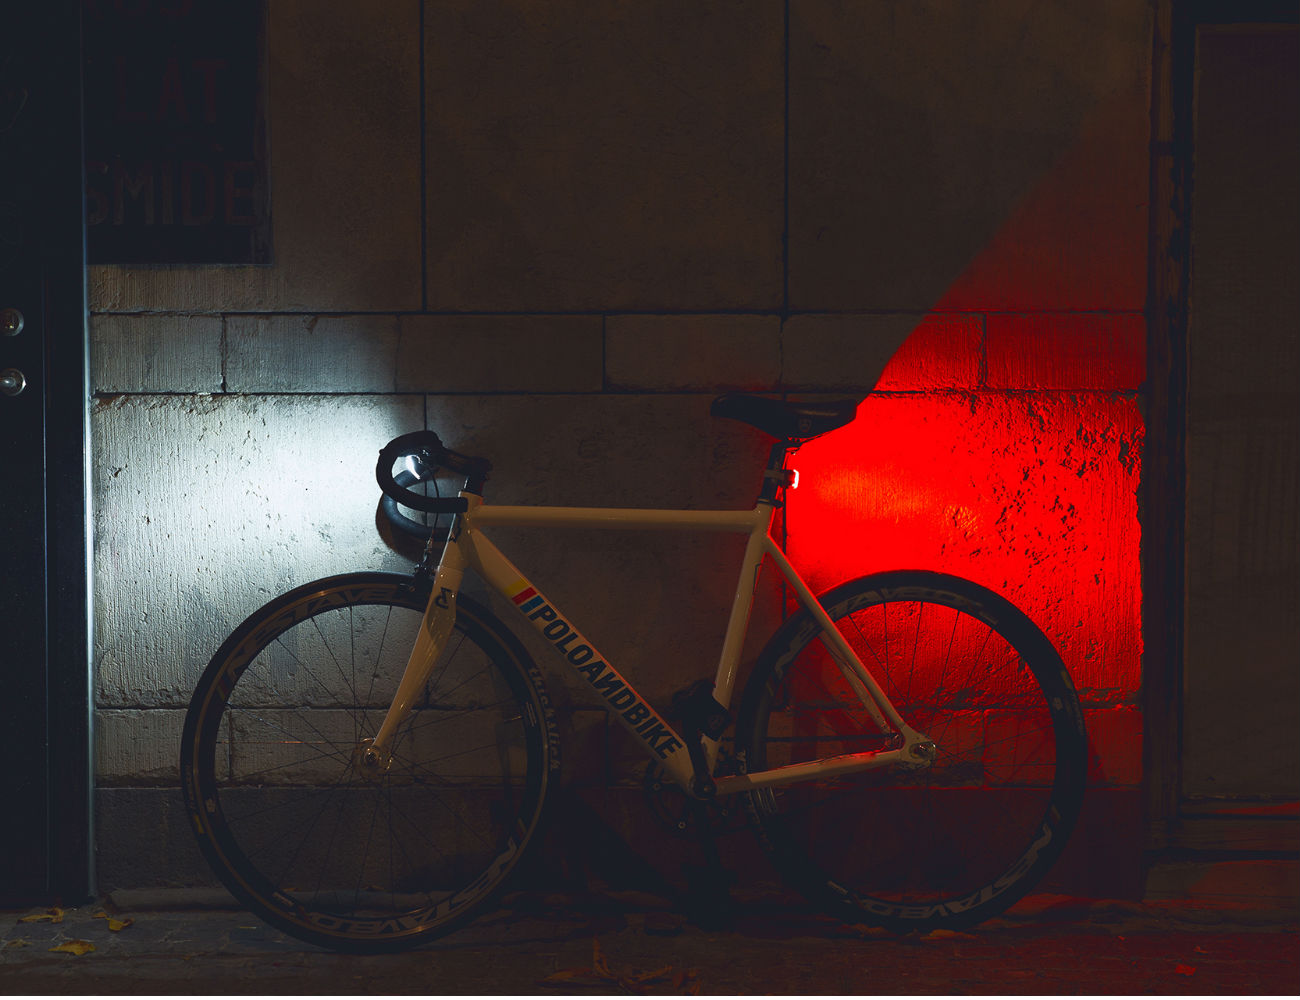 bookman-curve-front-bicycle-light-07